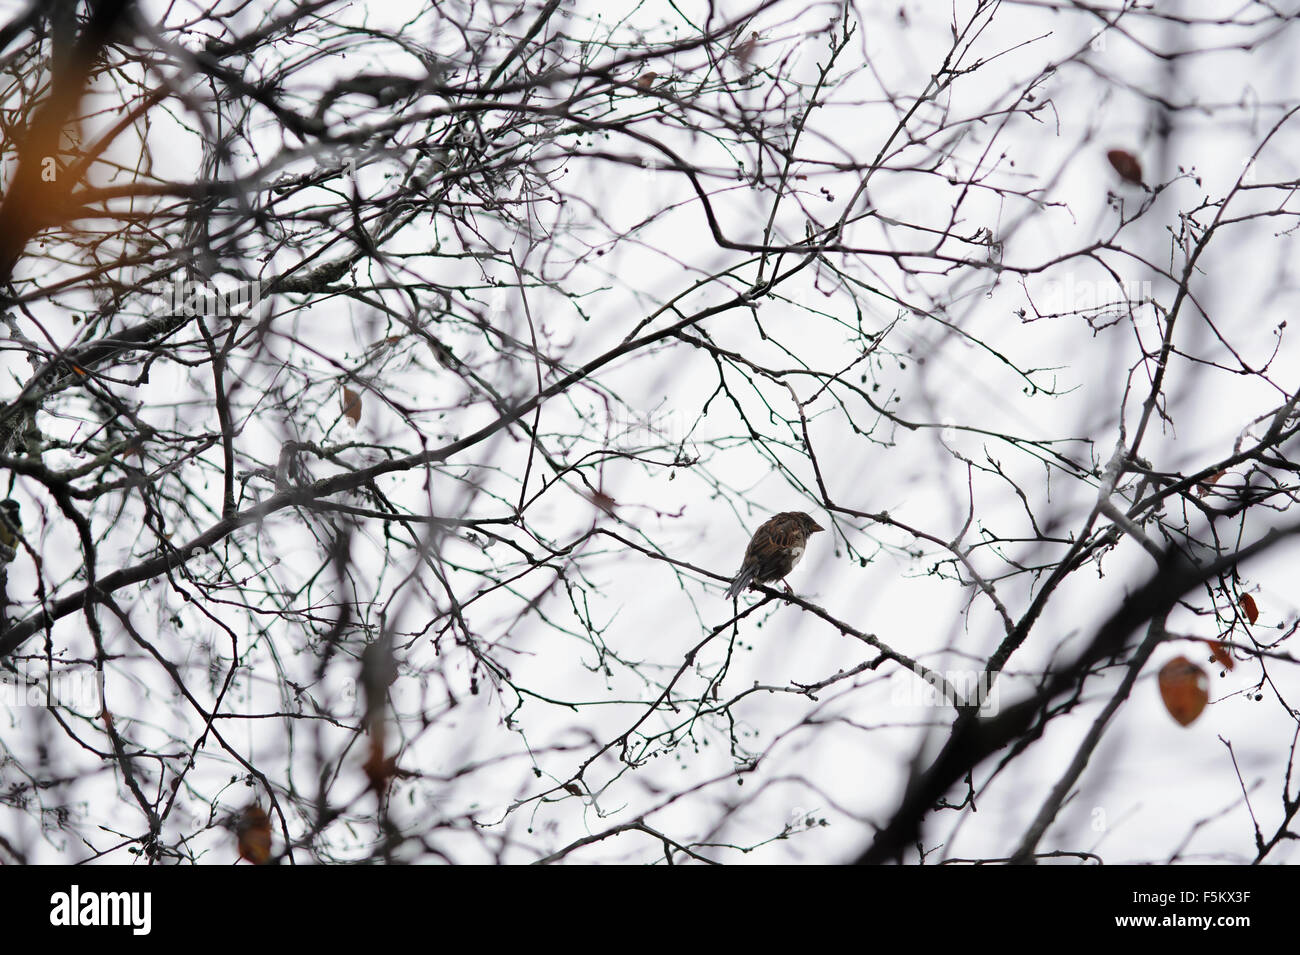 Lonely sparrow on empty tree branches in late autumn - Stock Image